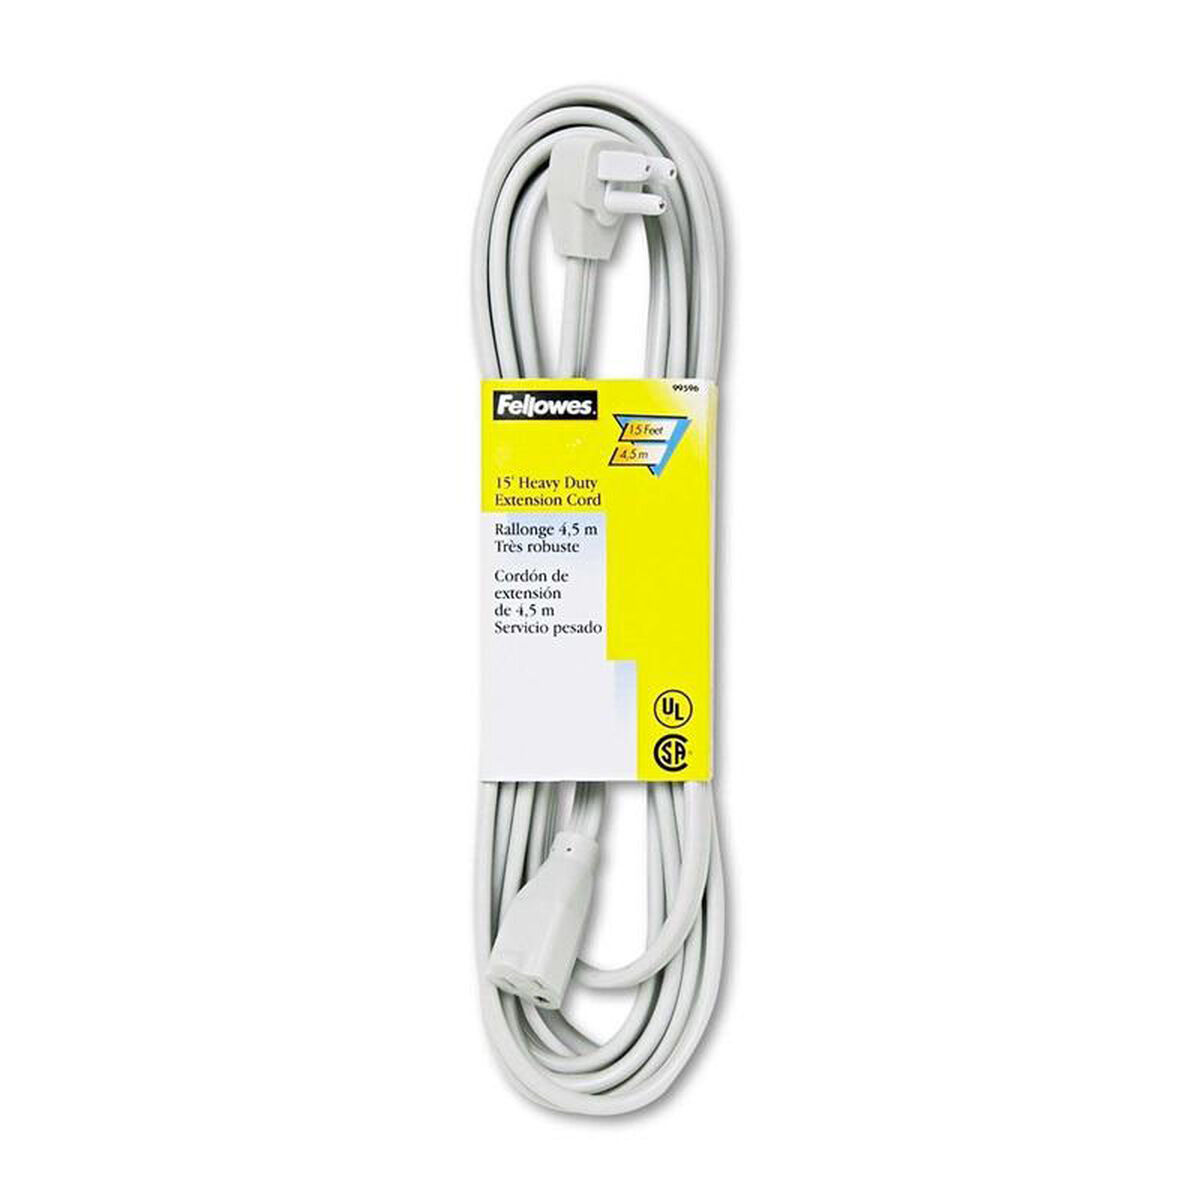 Fellowes fellowes indoor heavy duty extension cord 3 for Furniture 4 less outlet